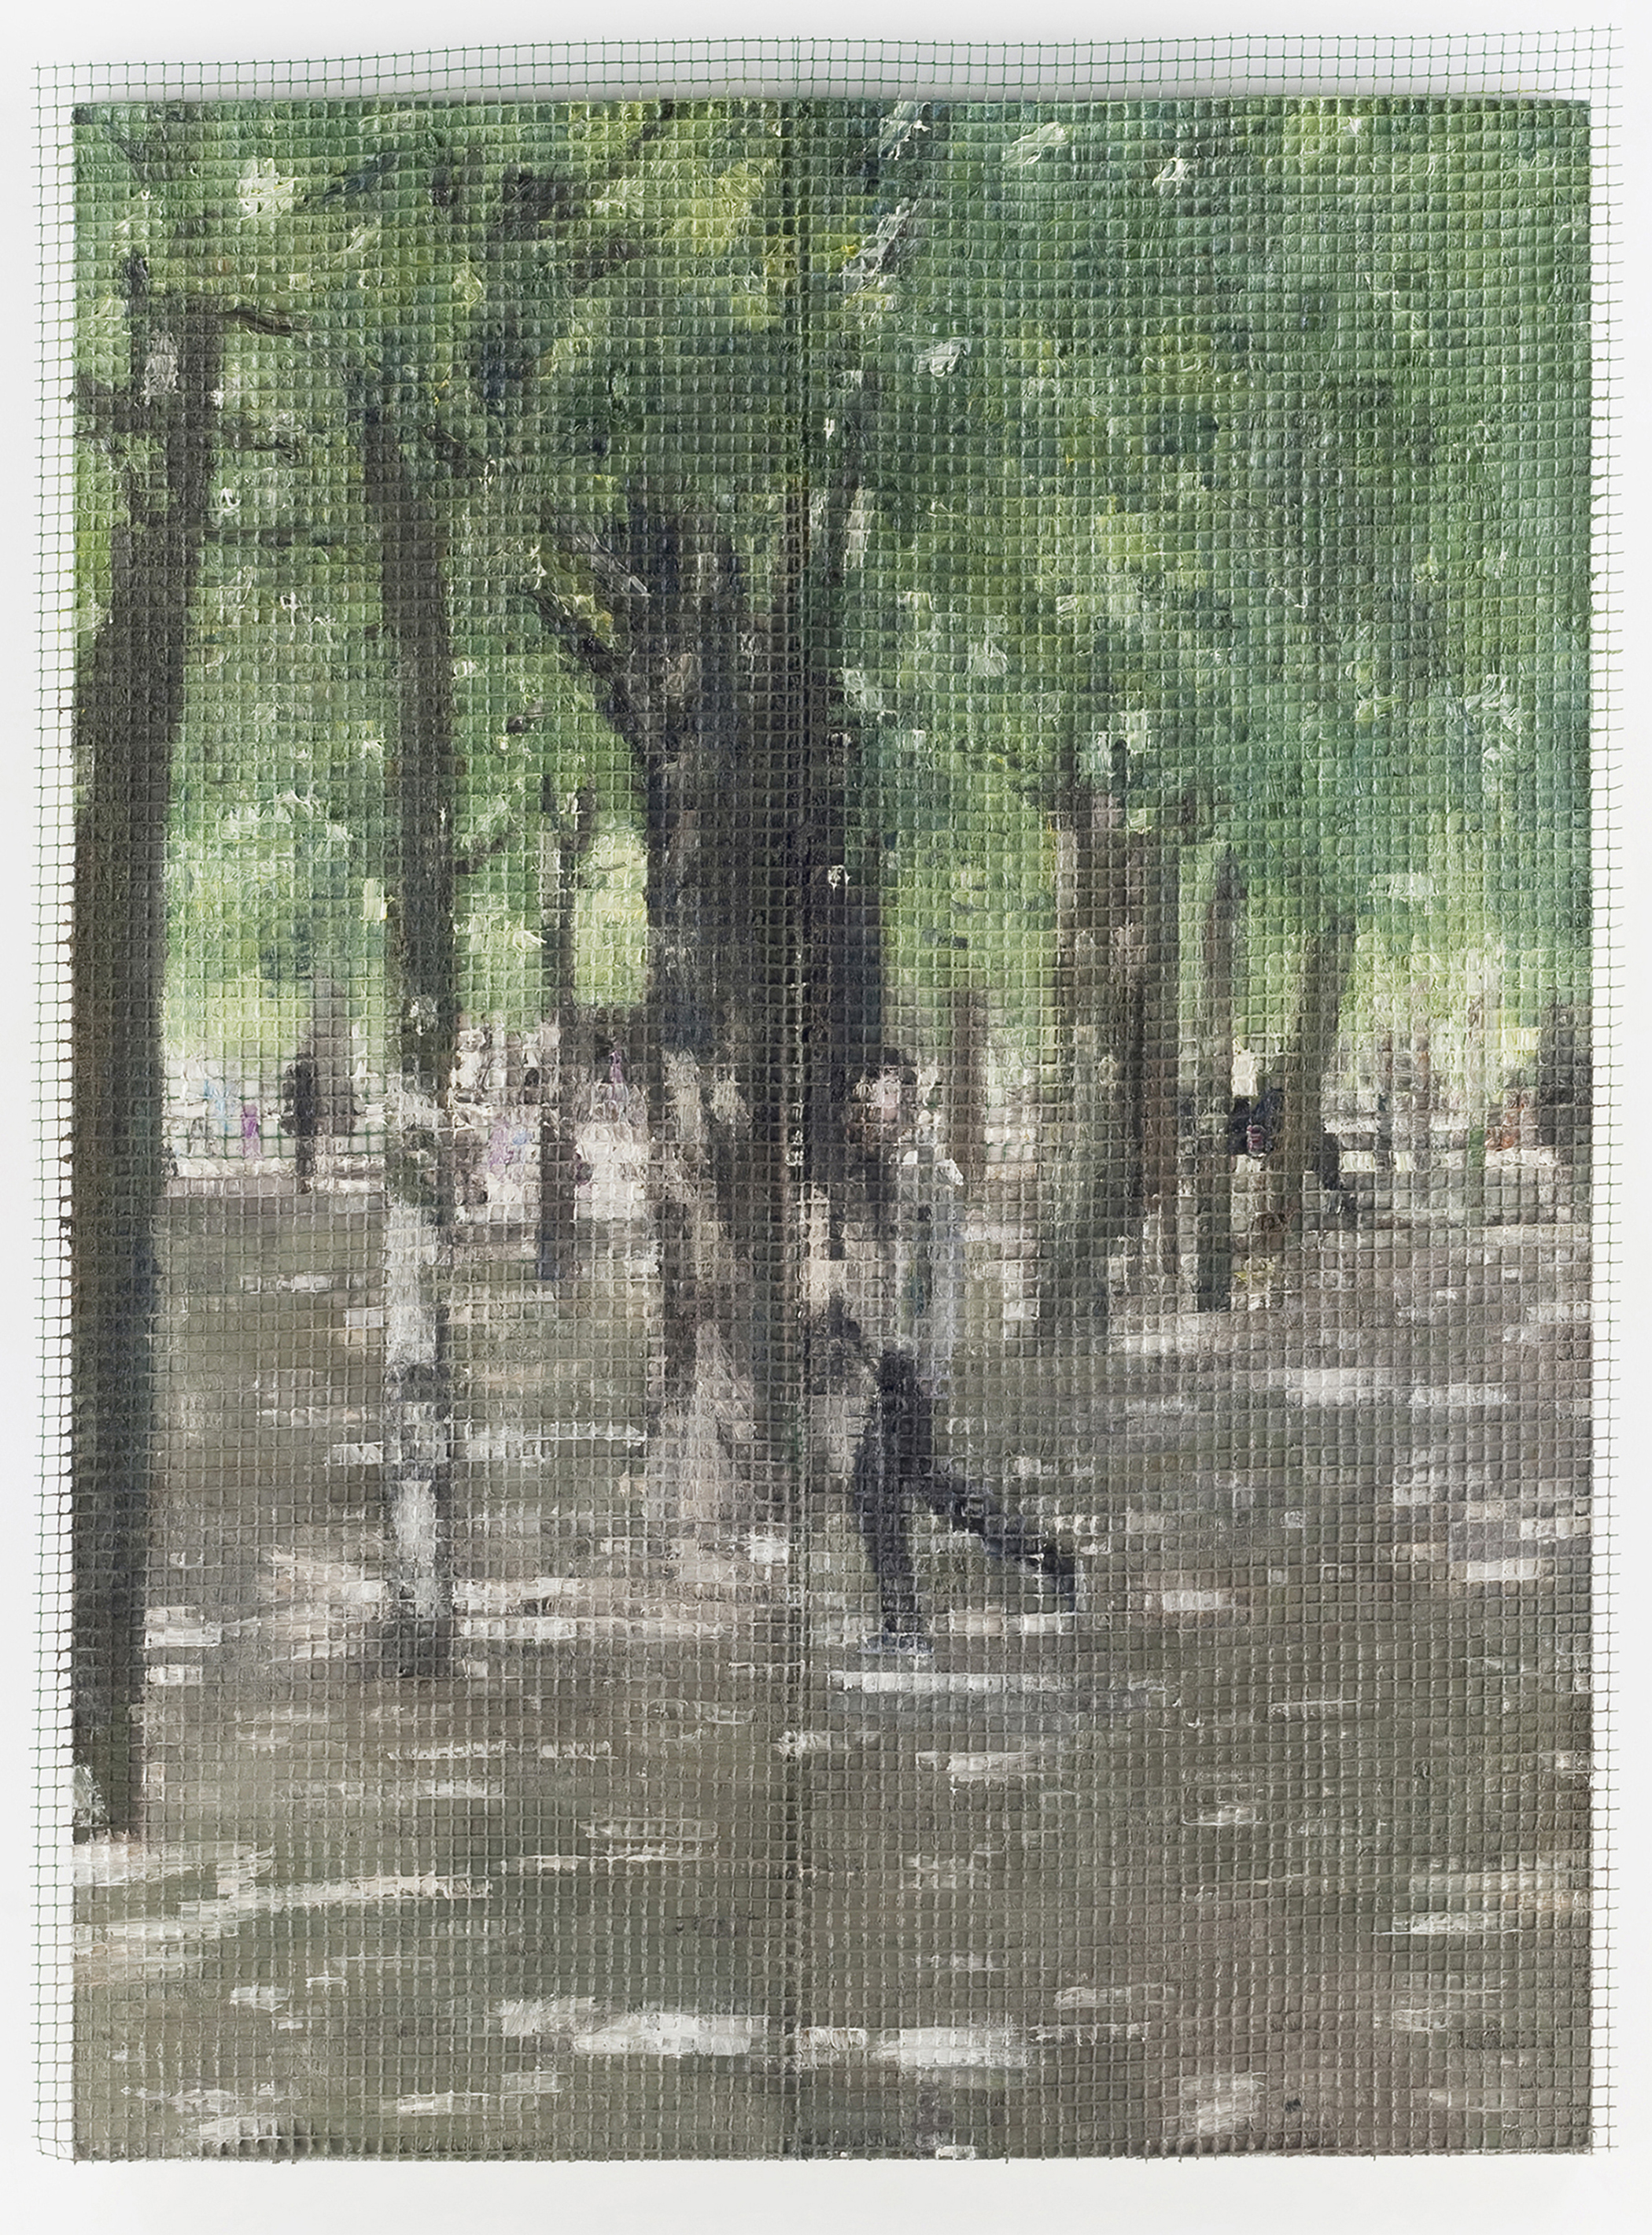 Jardin du Luxembourg I., 2012, oil on canvas, 230 x 170 cm